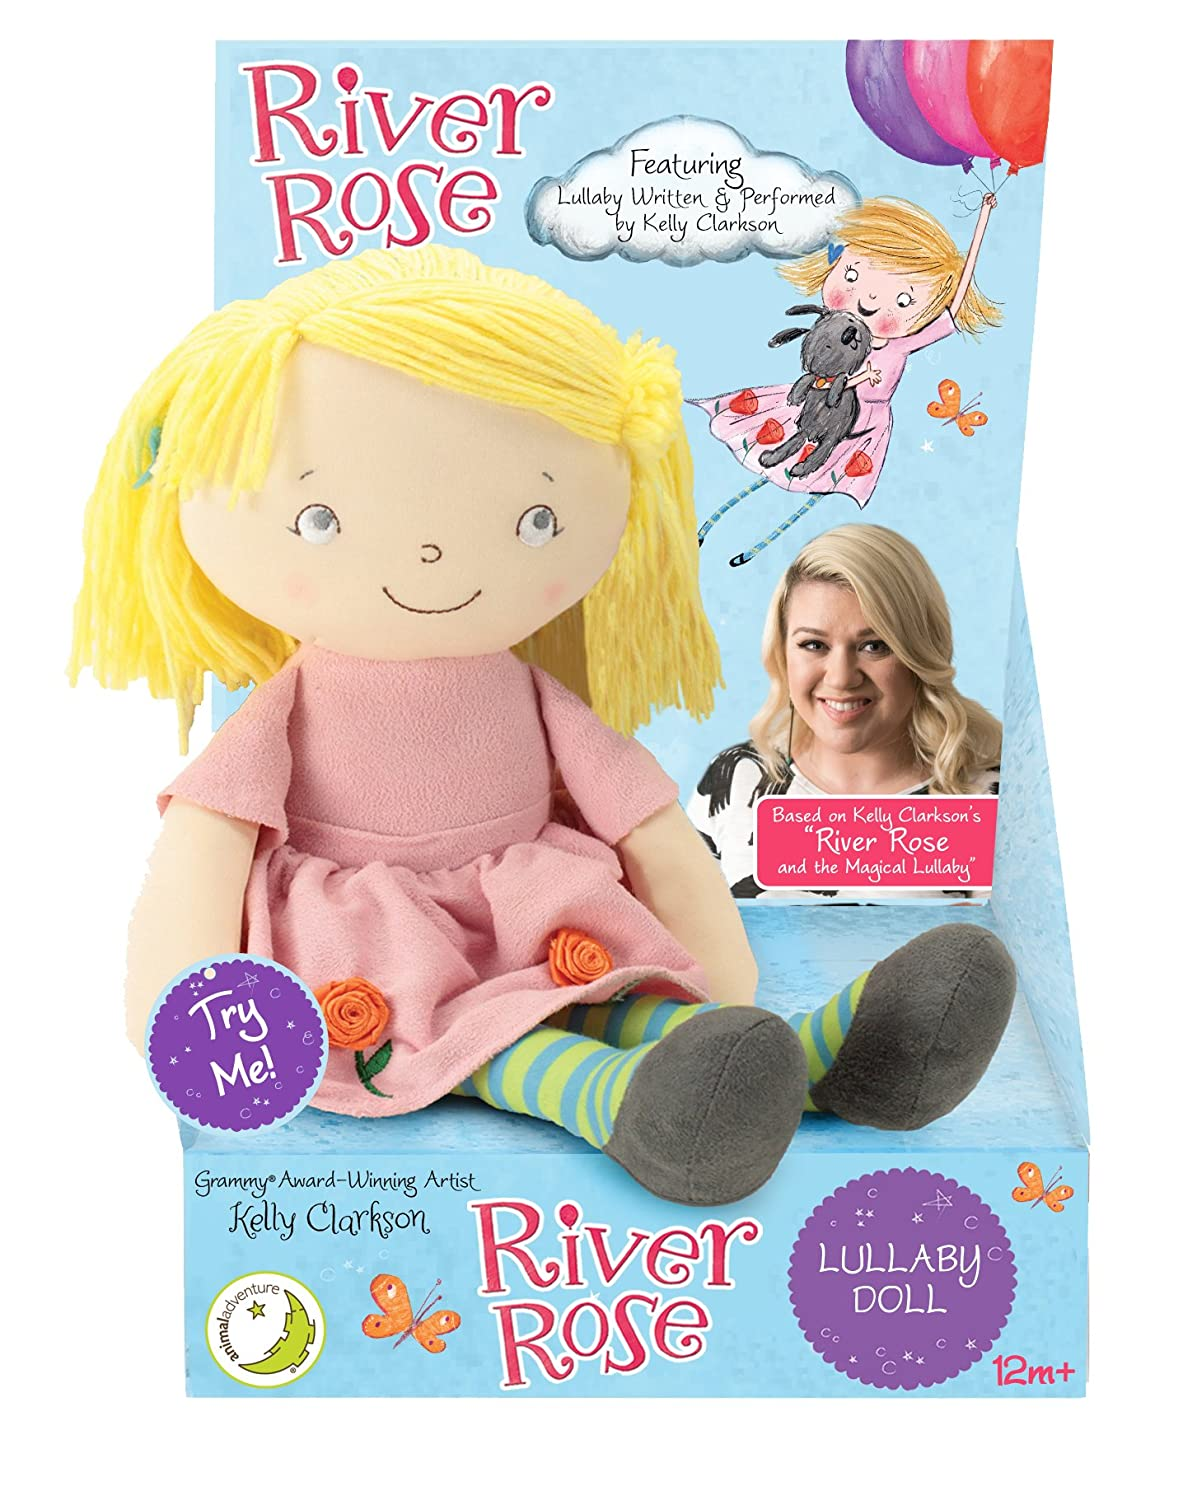 Amazon.com: River Rose Lullaby Doll by Kelly Clarkson: Toys & Games